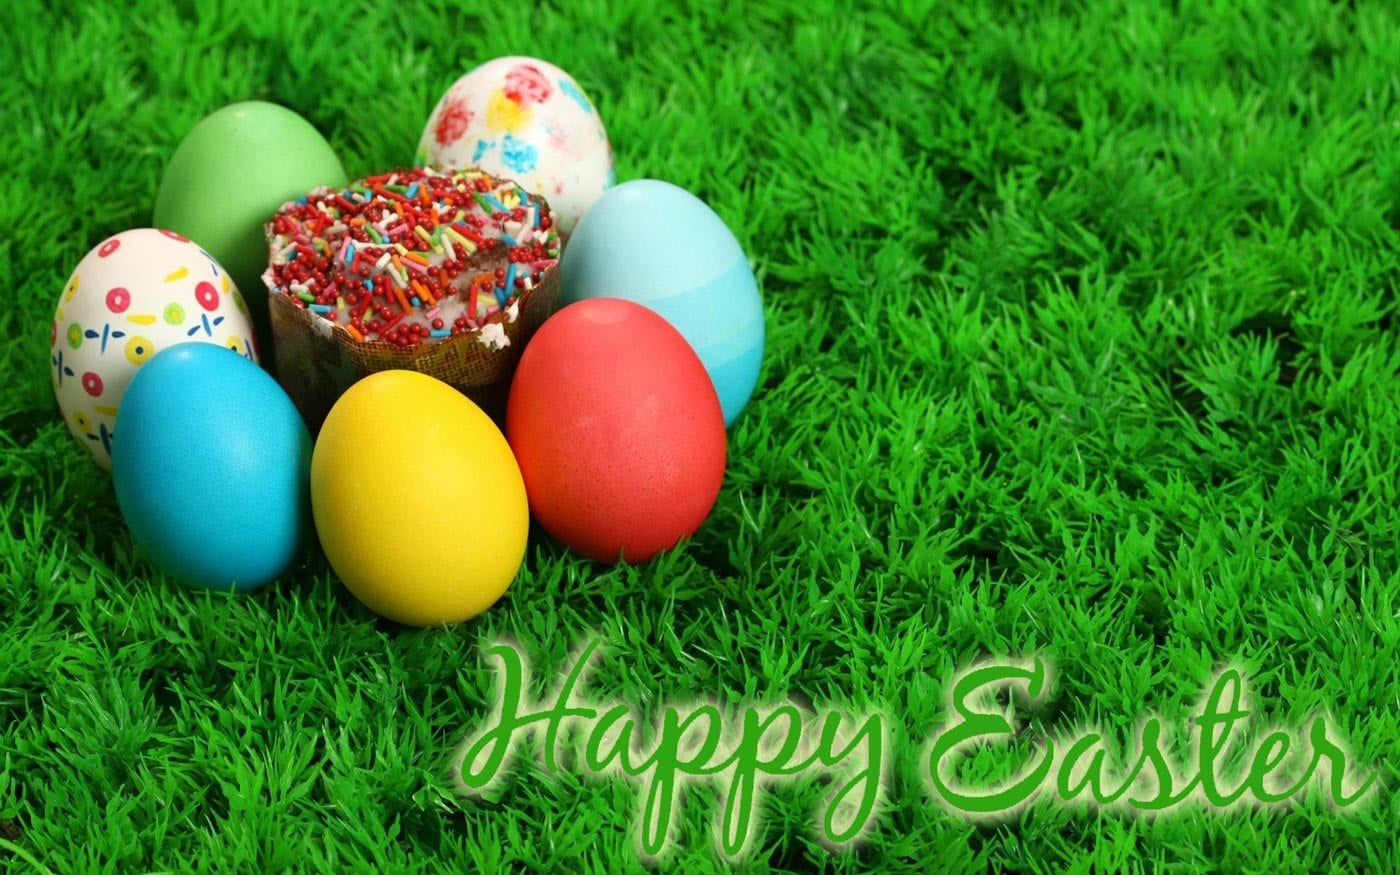 Best-Wallpaper-of-Happy-Easter-Day